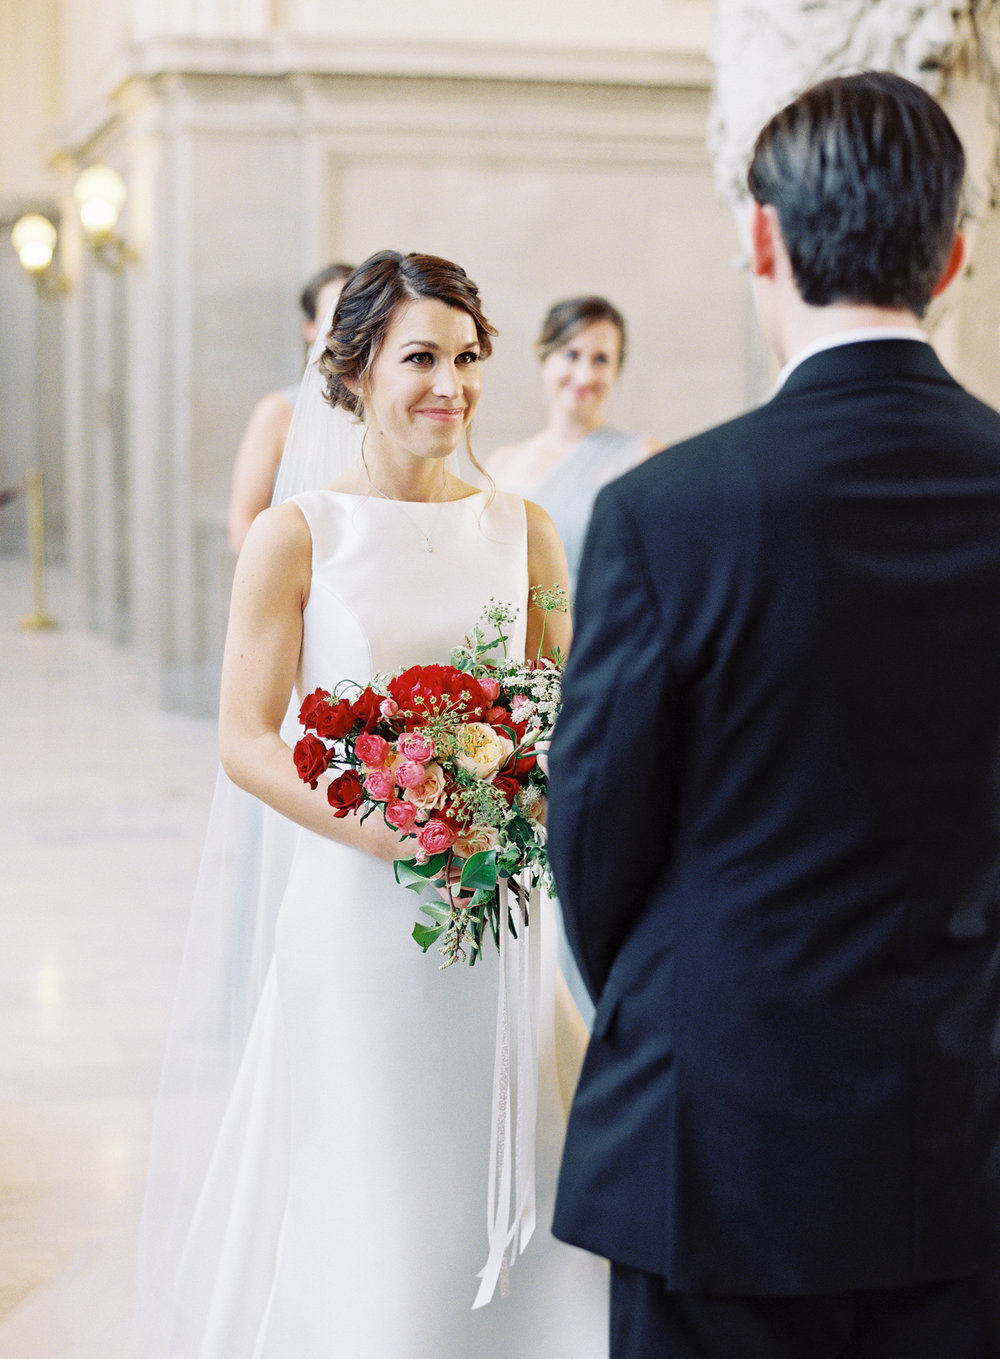 Meghan Mehan Photography - California Wedding Photographer | San Francisco City Hall Wedding 091.jpg